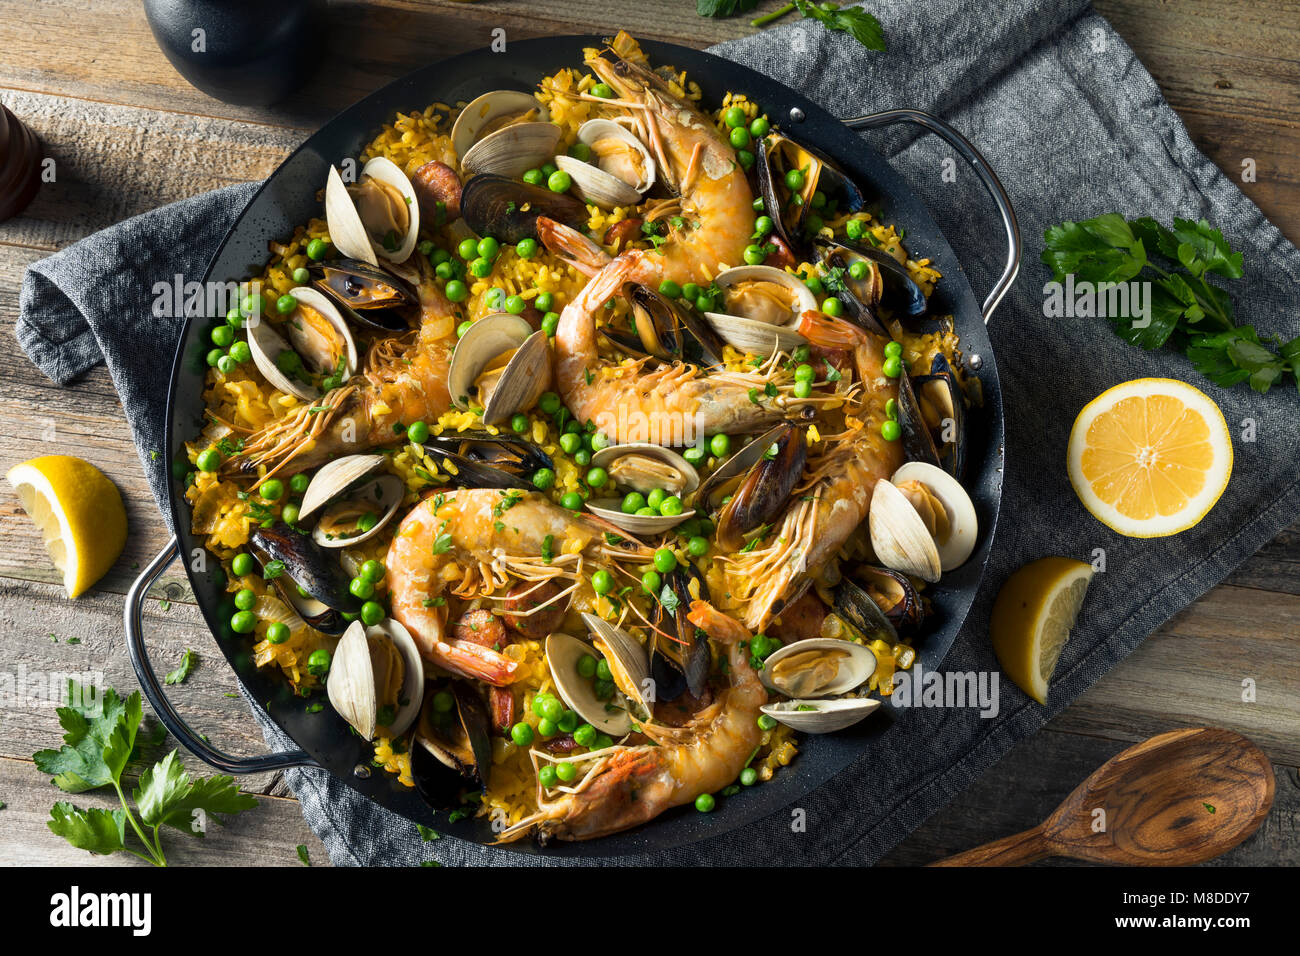 Homemade Spanish Seafood Paella with Prawns Mussels and Clams - Stock Image